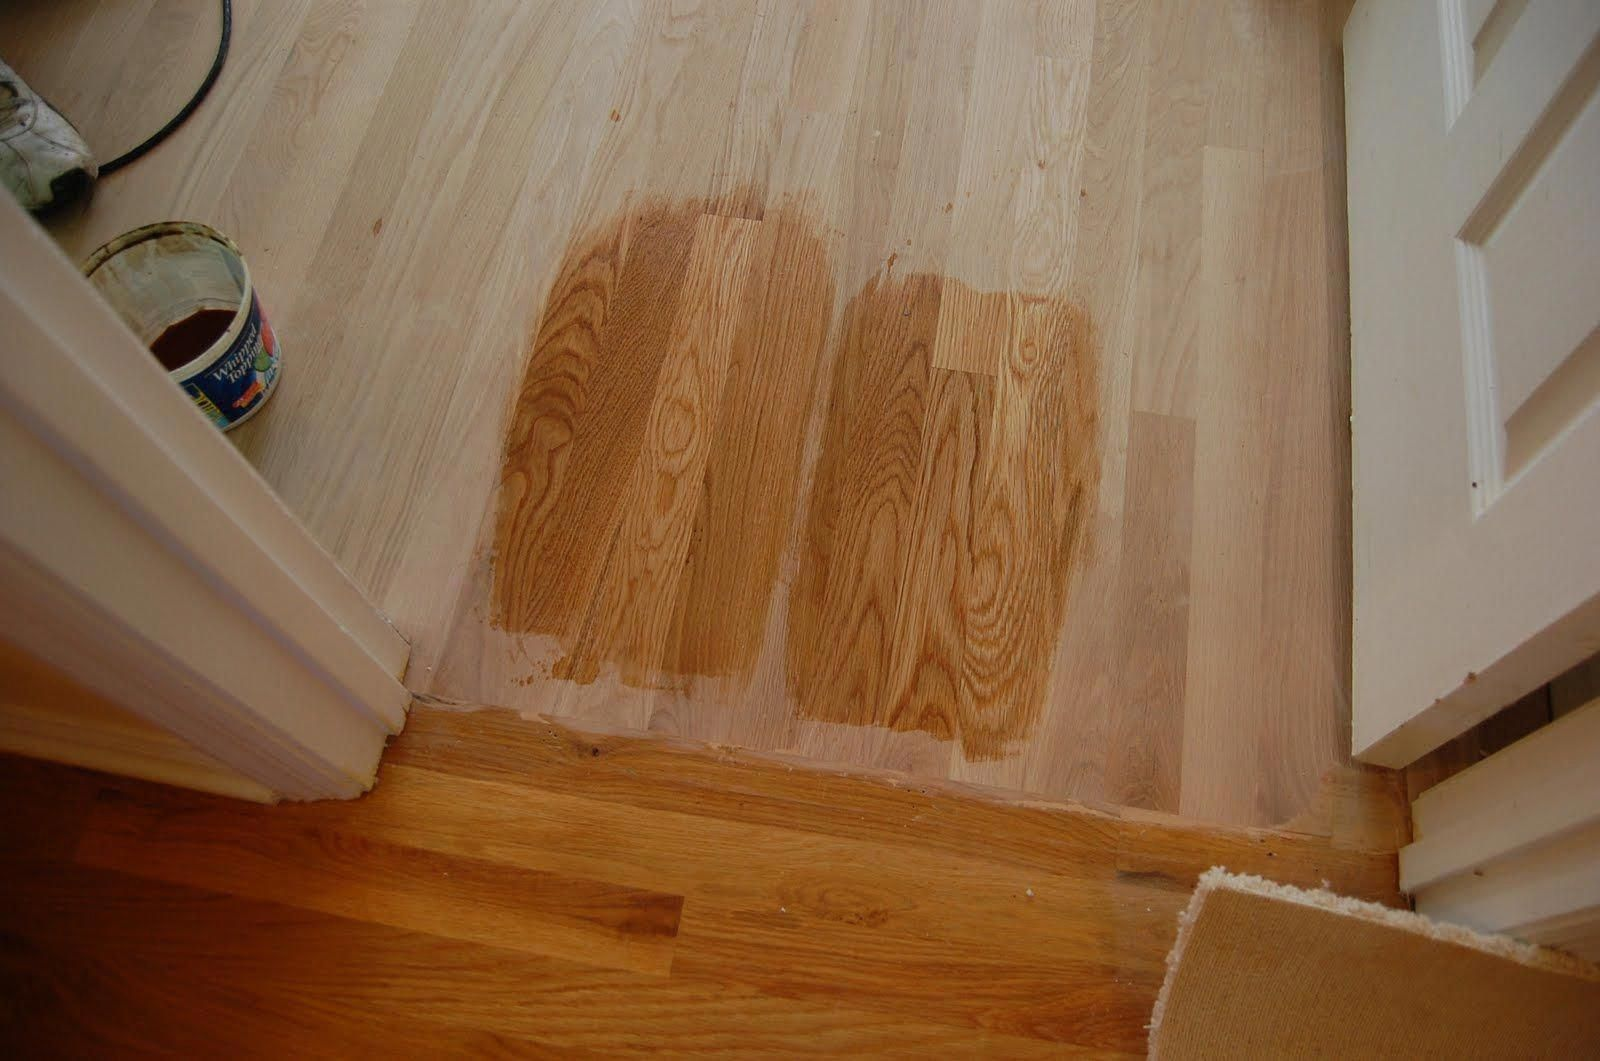 Transition Between Two Different Wood Floors Installing Hard Wood Floors Final Woodflooringhard Woodflo Wood Floors Hardwood Floors Wood Floors Wide Plank